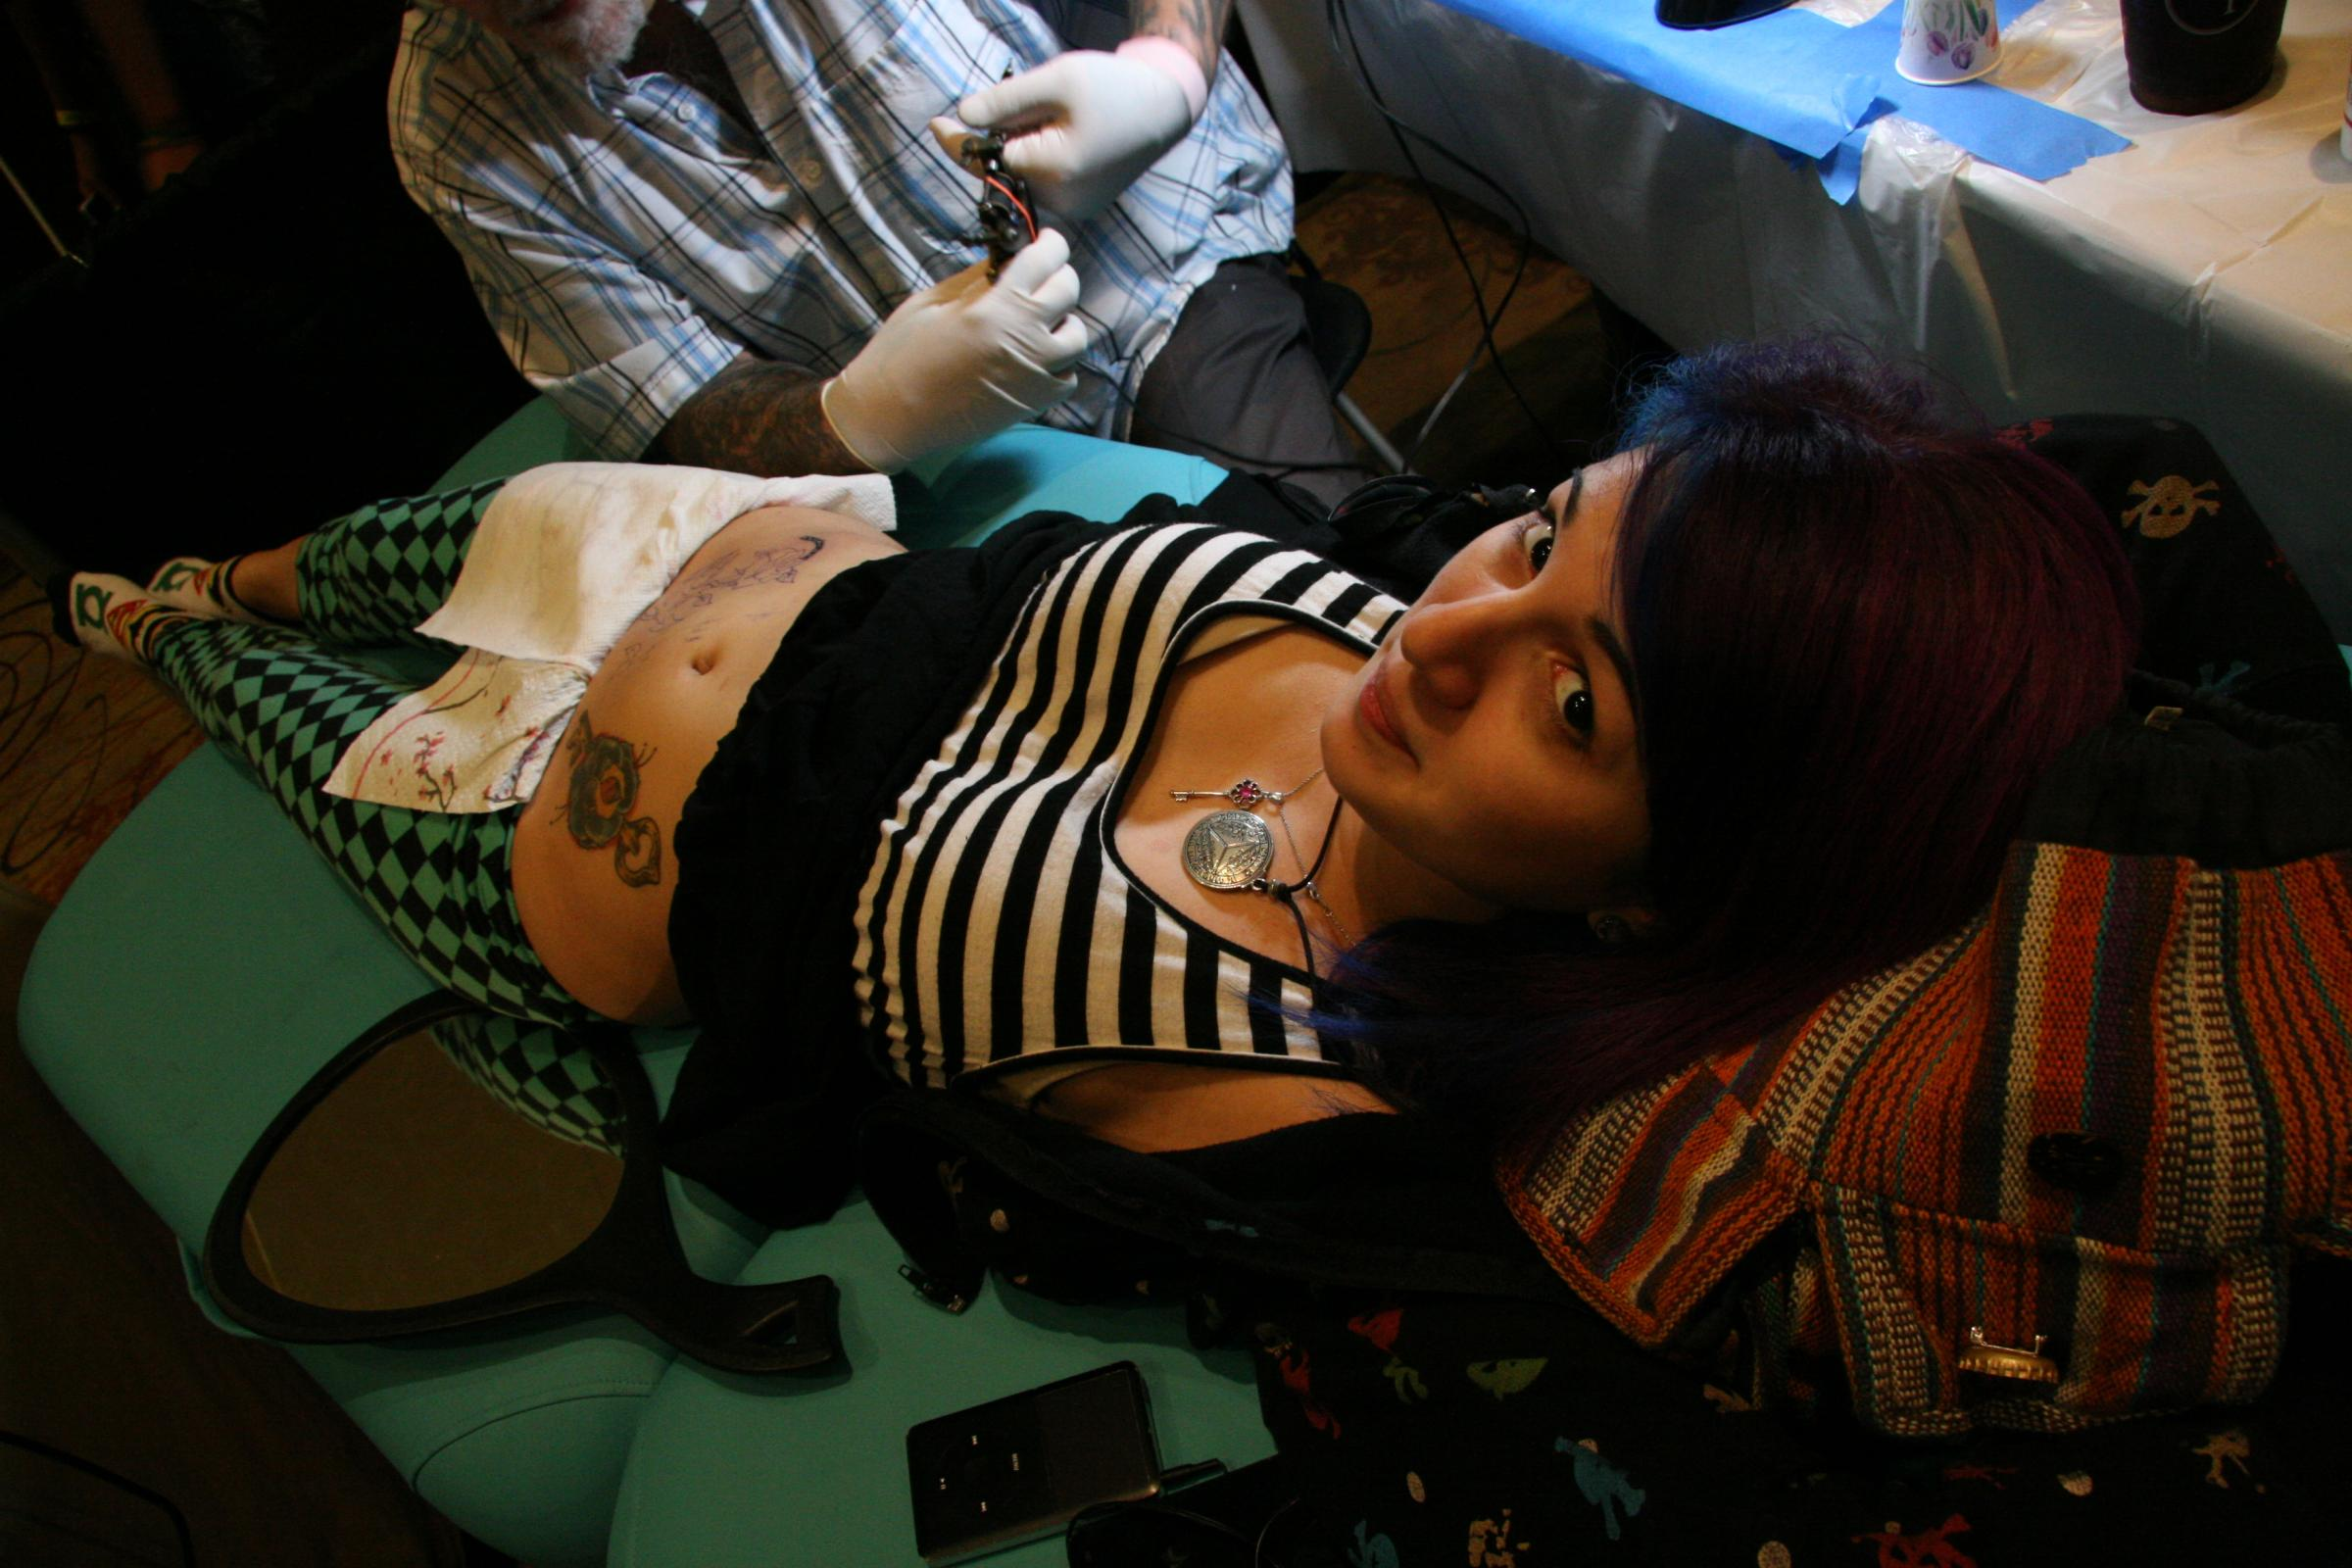 1St Annual Wv Tattoo Expo Kicks Off In Morgantown West Ideas And Designs